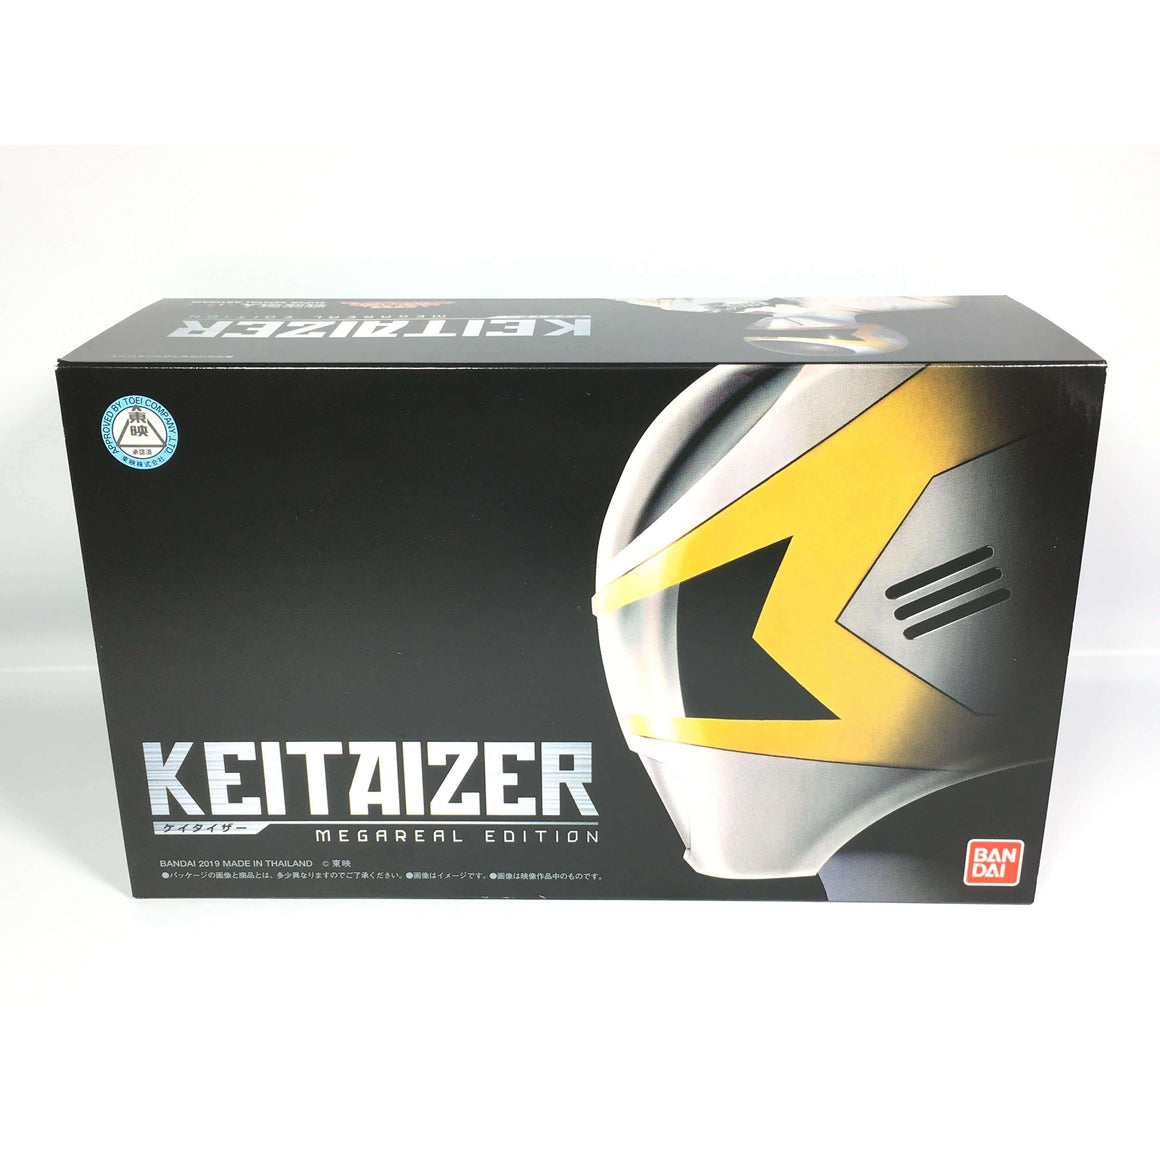 CSTOYS INTERNATIONAL:3000000421024[BOXED] Denji Sentai Megaranger Keitaizer -Megareal Edition